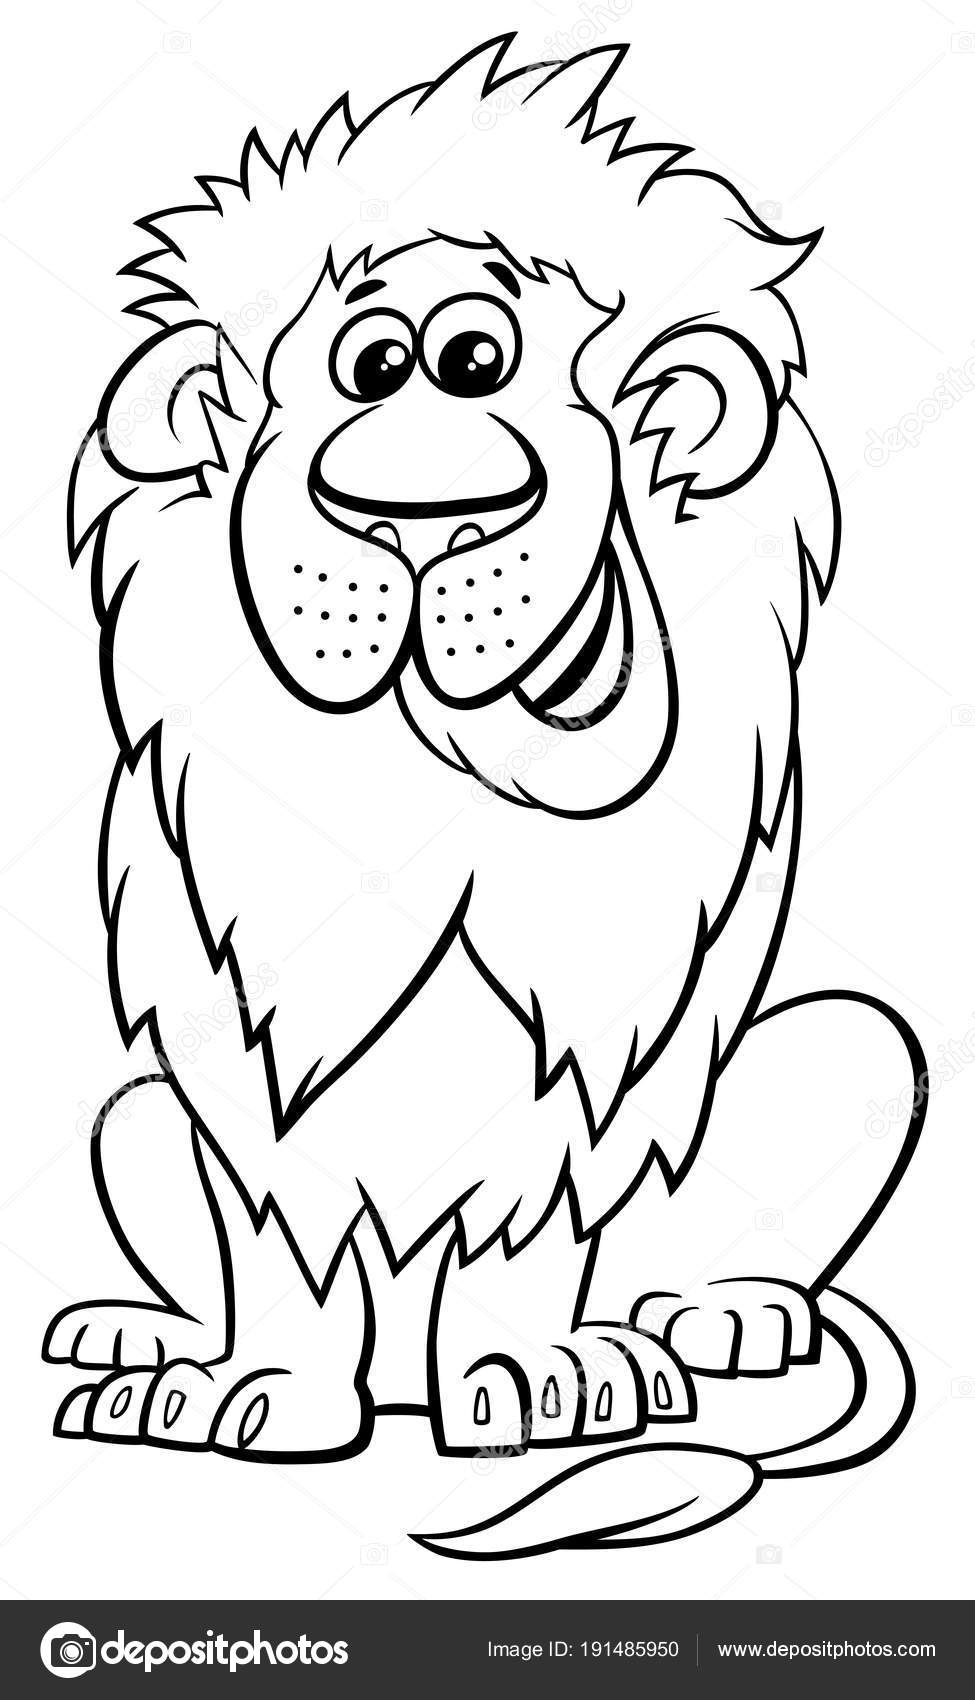 lion animal character cartoon coloring book — Stock Vector ...